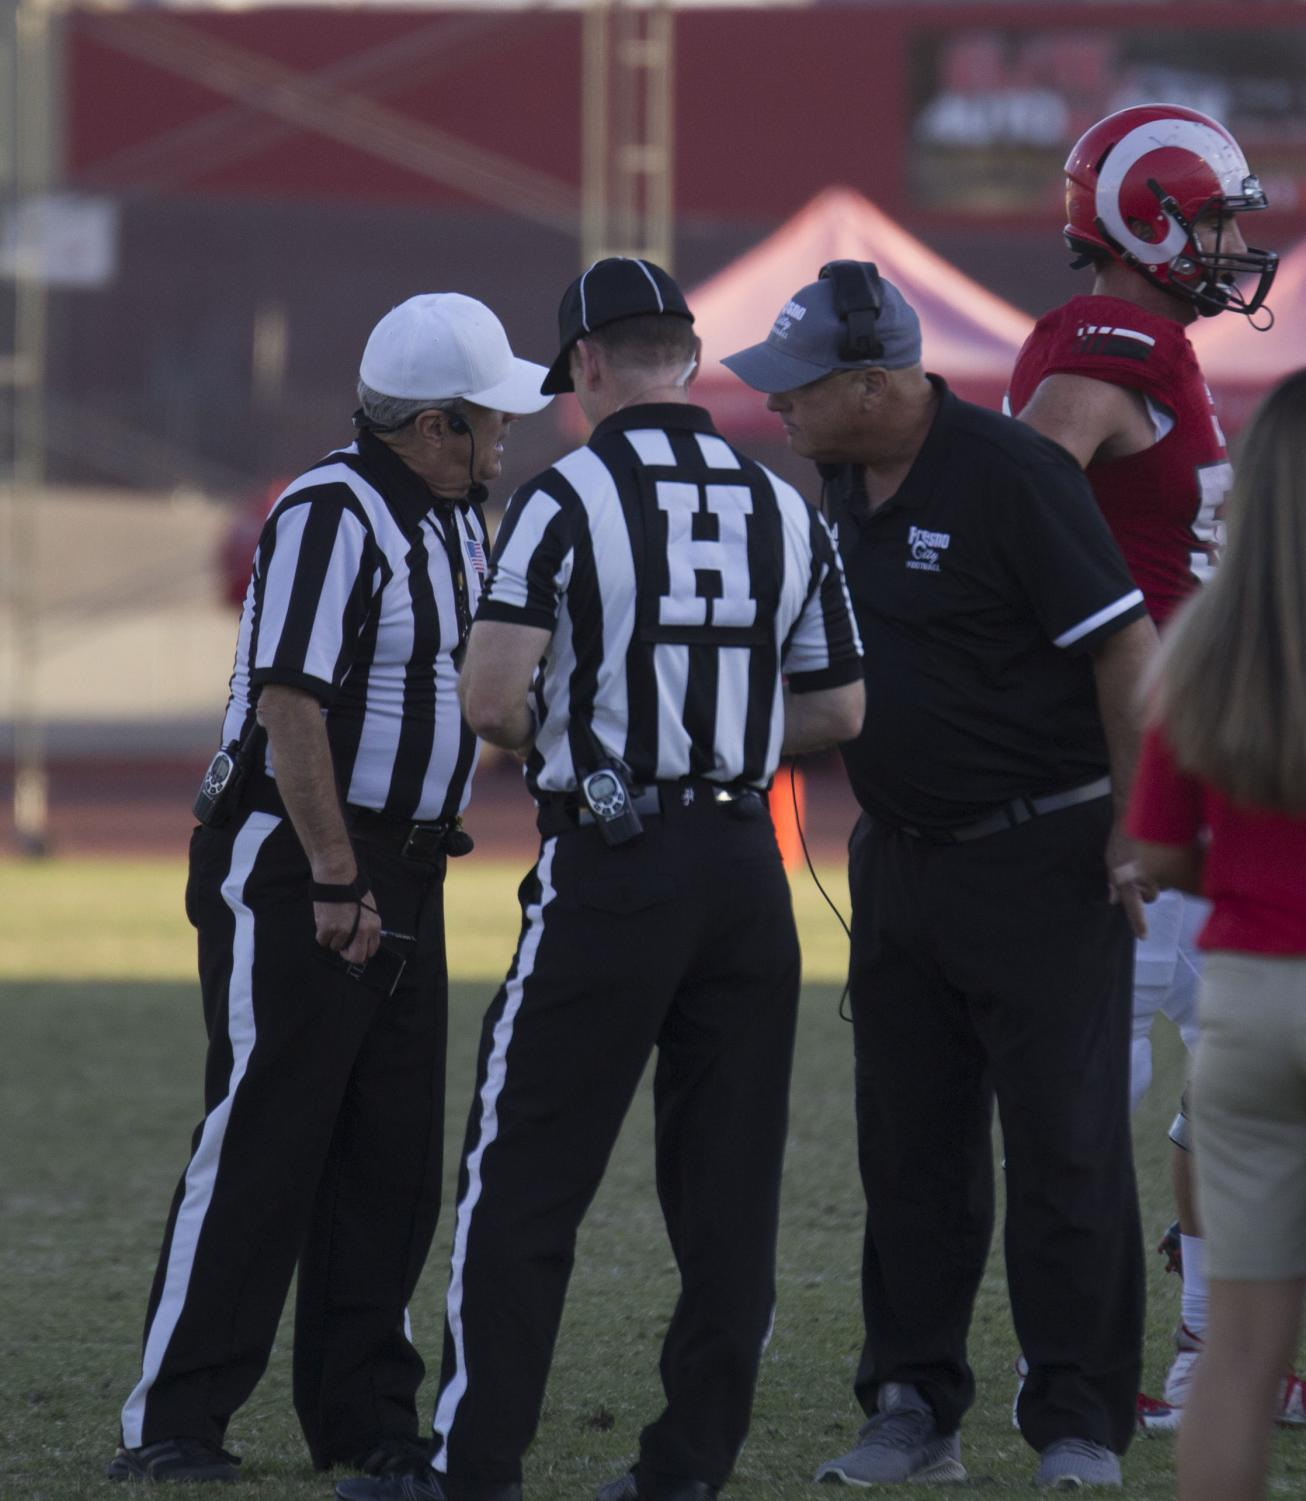 Rams head coach Tony Caviglia meets on the sidelines with referees during a timeout in the Rams' game against American River College on Oct. 5, 2019. The Rams went on to lose the game by a score of 9-3.